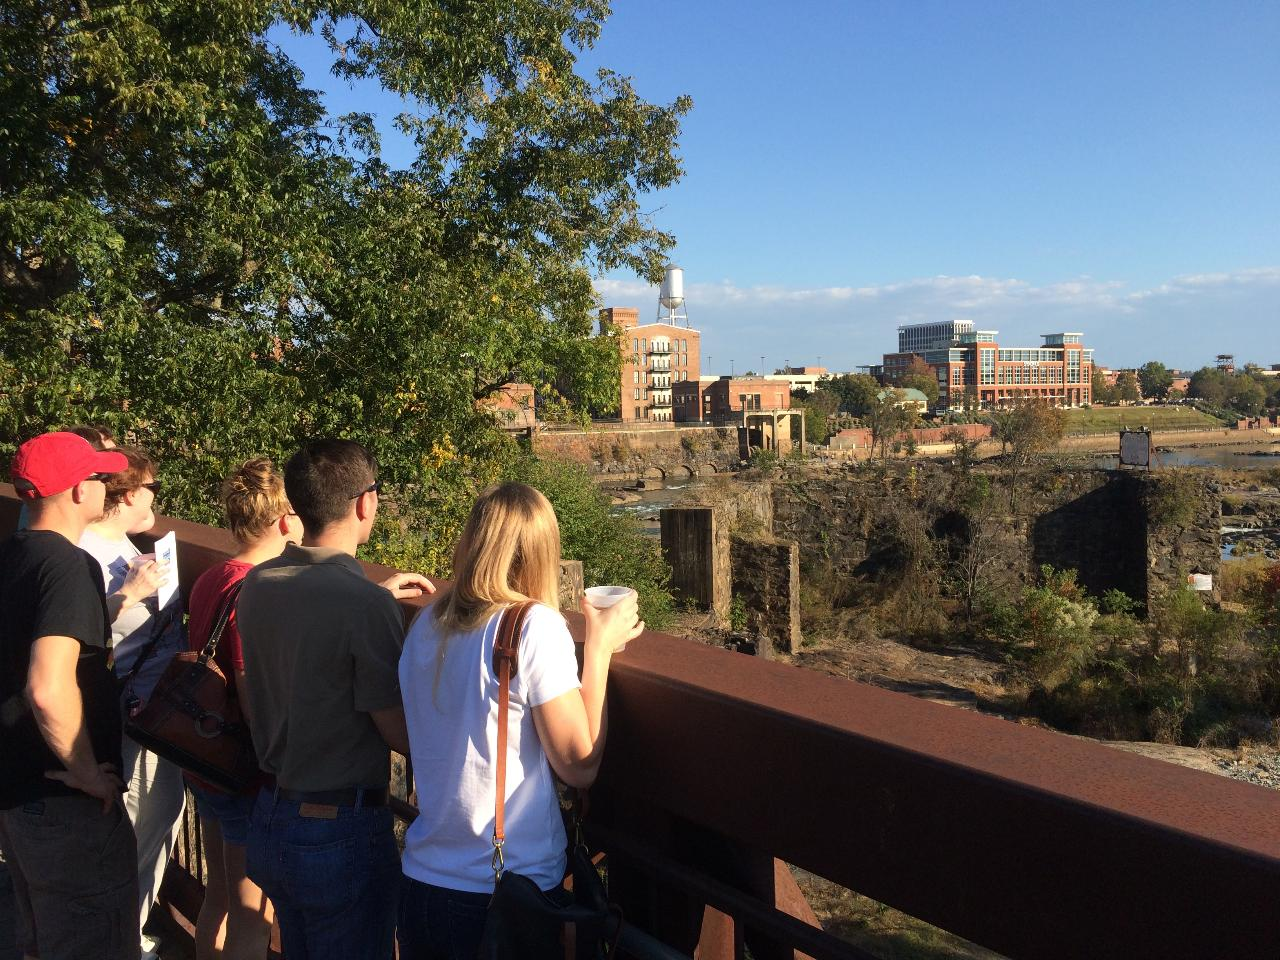 Phenix City Story Guide-On-Board Your Vehicle Tour